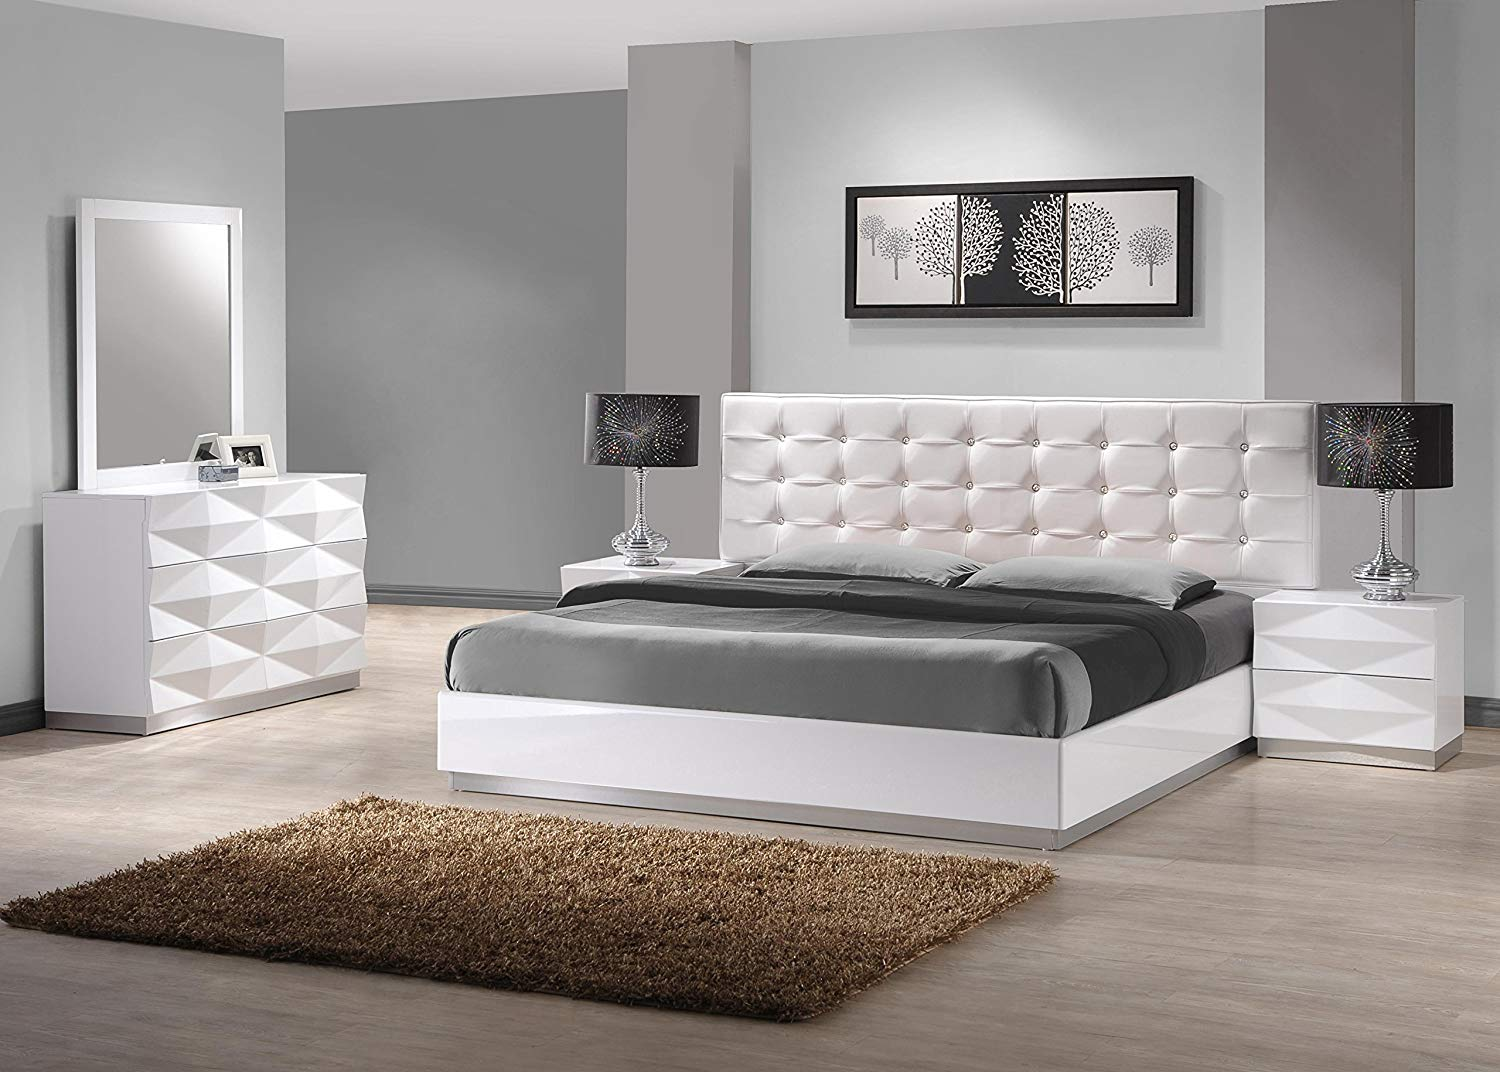 J and M Furniture 17688-KBG Verona K Bed Room Set Bedroom Furniture